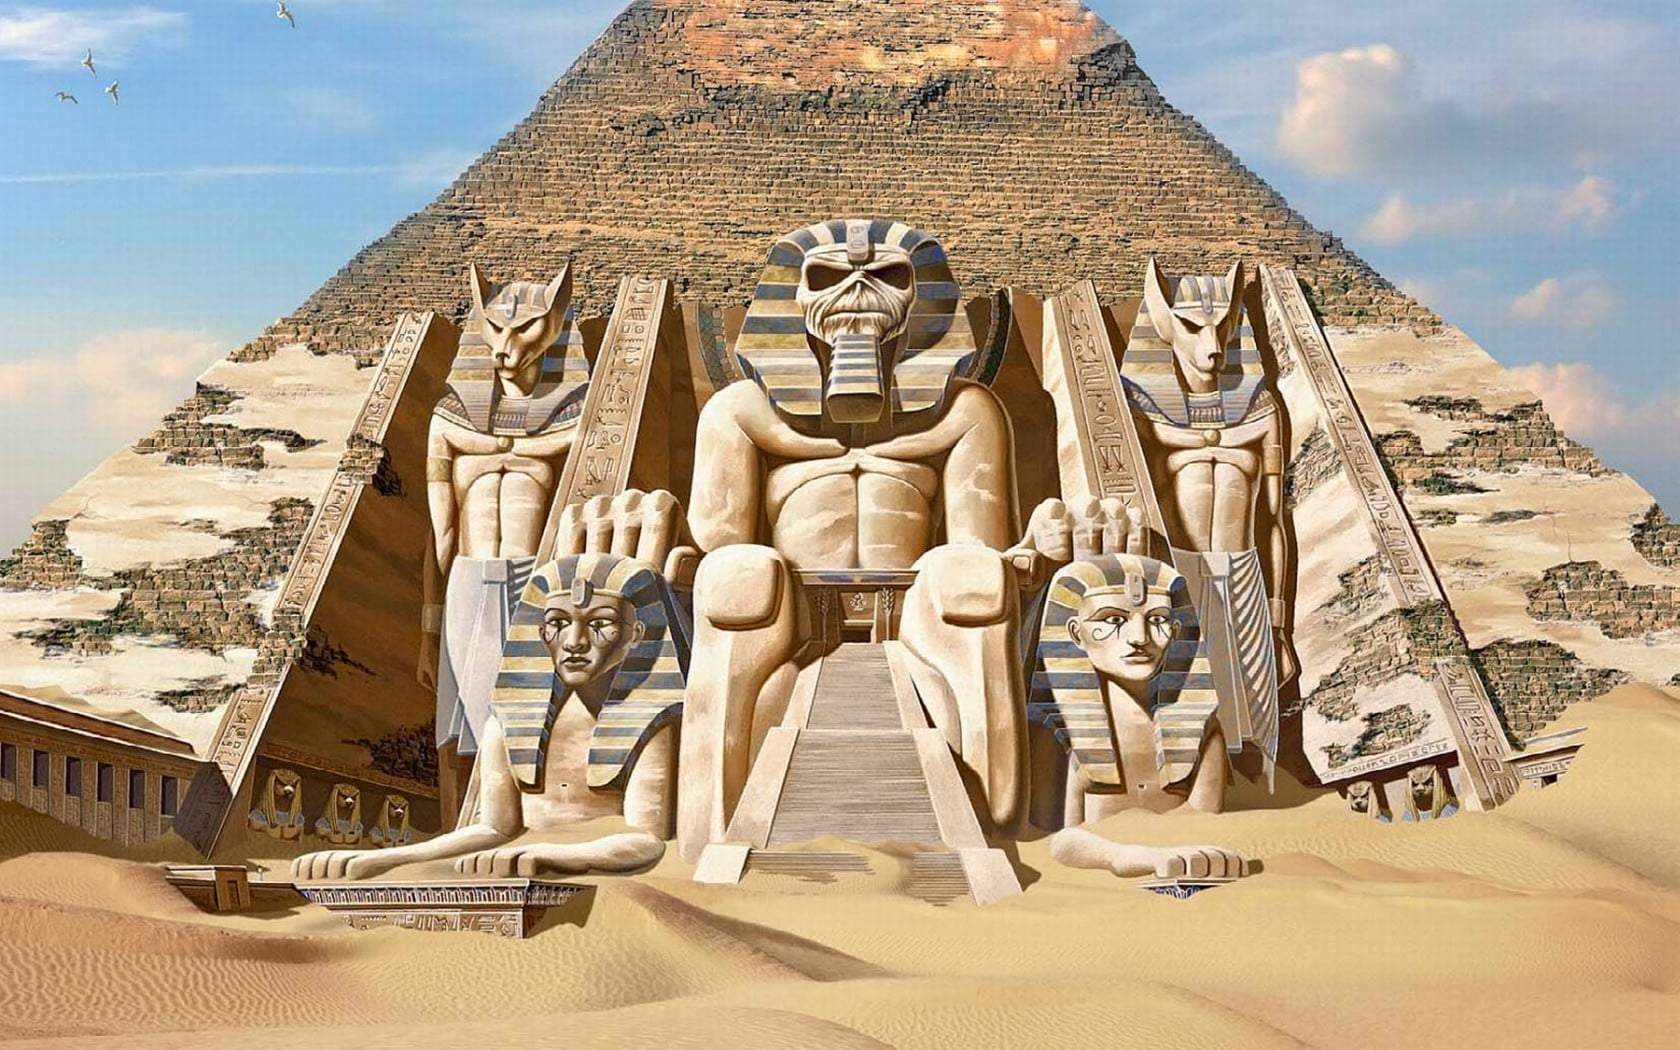 Iphone 2g Wallpaper For Iphone X Pyramid With Statues Hd Wallpaper Wallpaper Flare